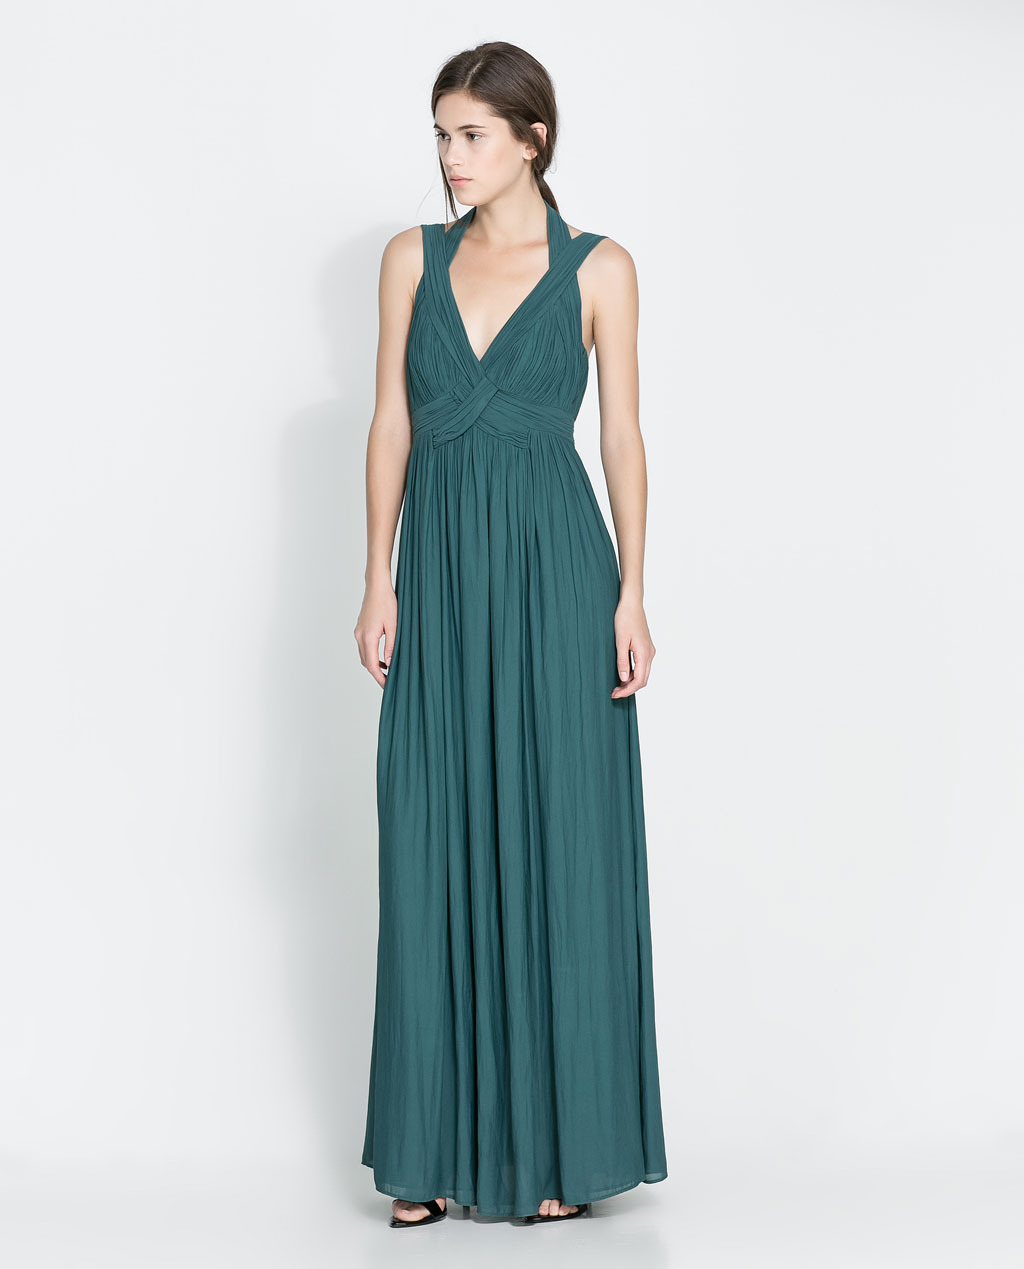 Long Gathered Dress - neckline: low v-neck; fit: empire; pattern: plain; sleeve style: sleeveless; style: maxi dress; waist detail: twist front waist detail/nipped in at waist on one side/soft pleats/draping/ruching/gathering waist detail; predominant colour: teal; length: floor length; fibres: polyester/polyamide - 100%; occasions: occasion; hip detail: soft pleats at hip/draping at hip/flared at hip; sleeve length: sleeveless; pattern type: fabric; texture group: jersey - stretchy/drapey; season: a/w 2013